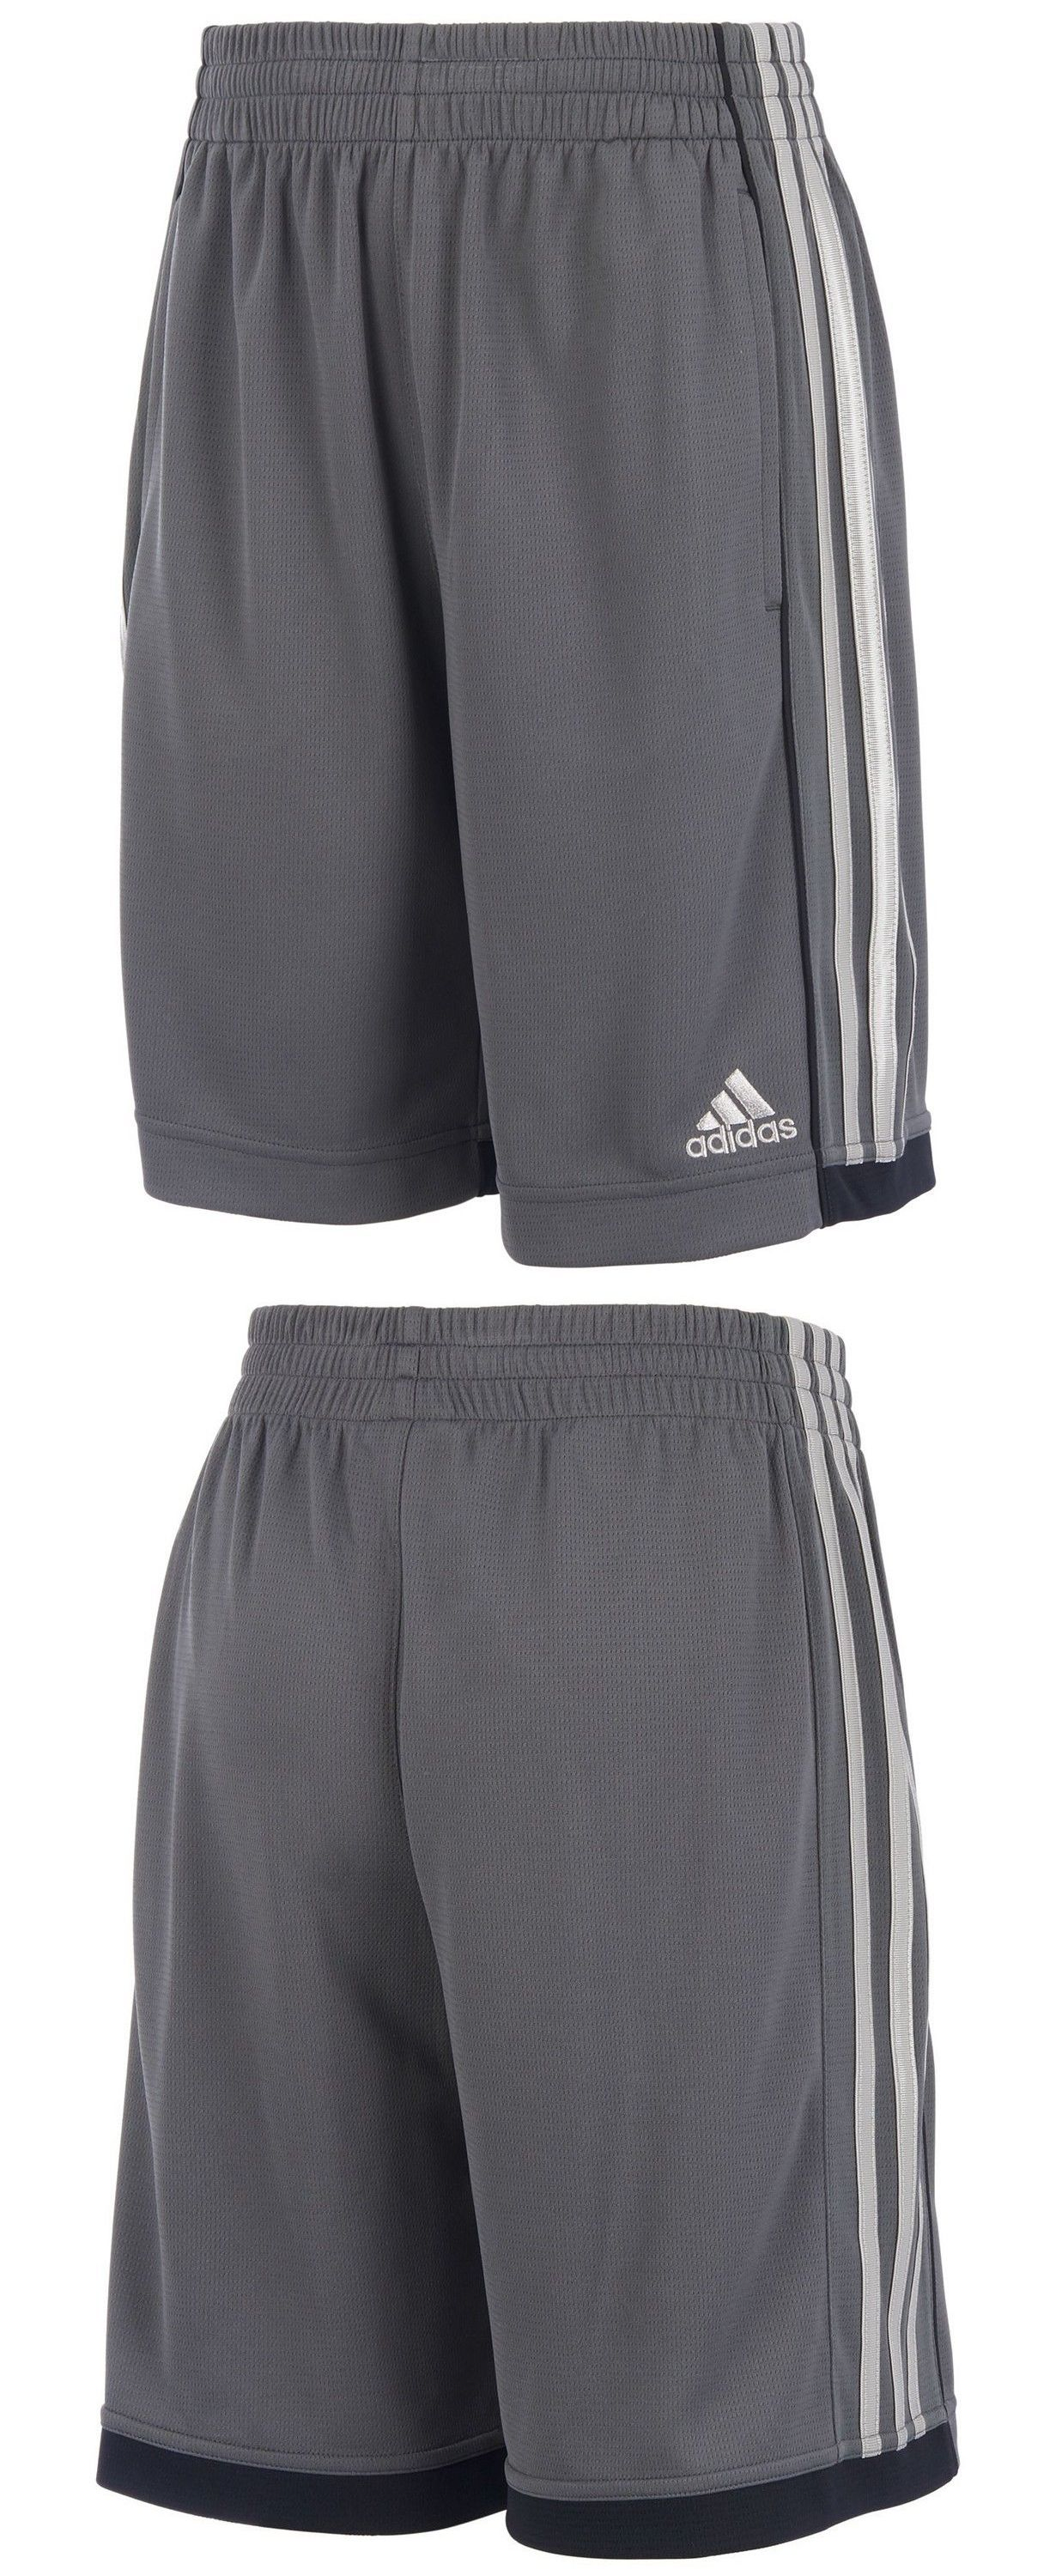 1d6ef75a880dfe Shorts 15615  Adidas Speed 18 Shorts Boys Youth L Large 14 16 Grey Athletic  -  BUY IT NOW ONLY   16.99 on  eBay  shorts  adidas  speed  youth  large    ...